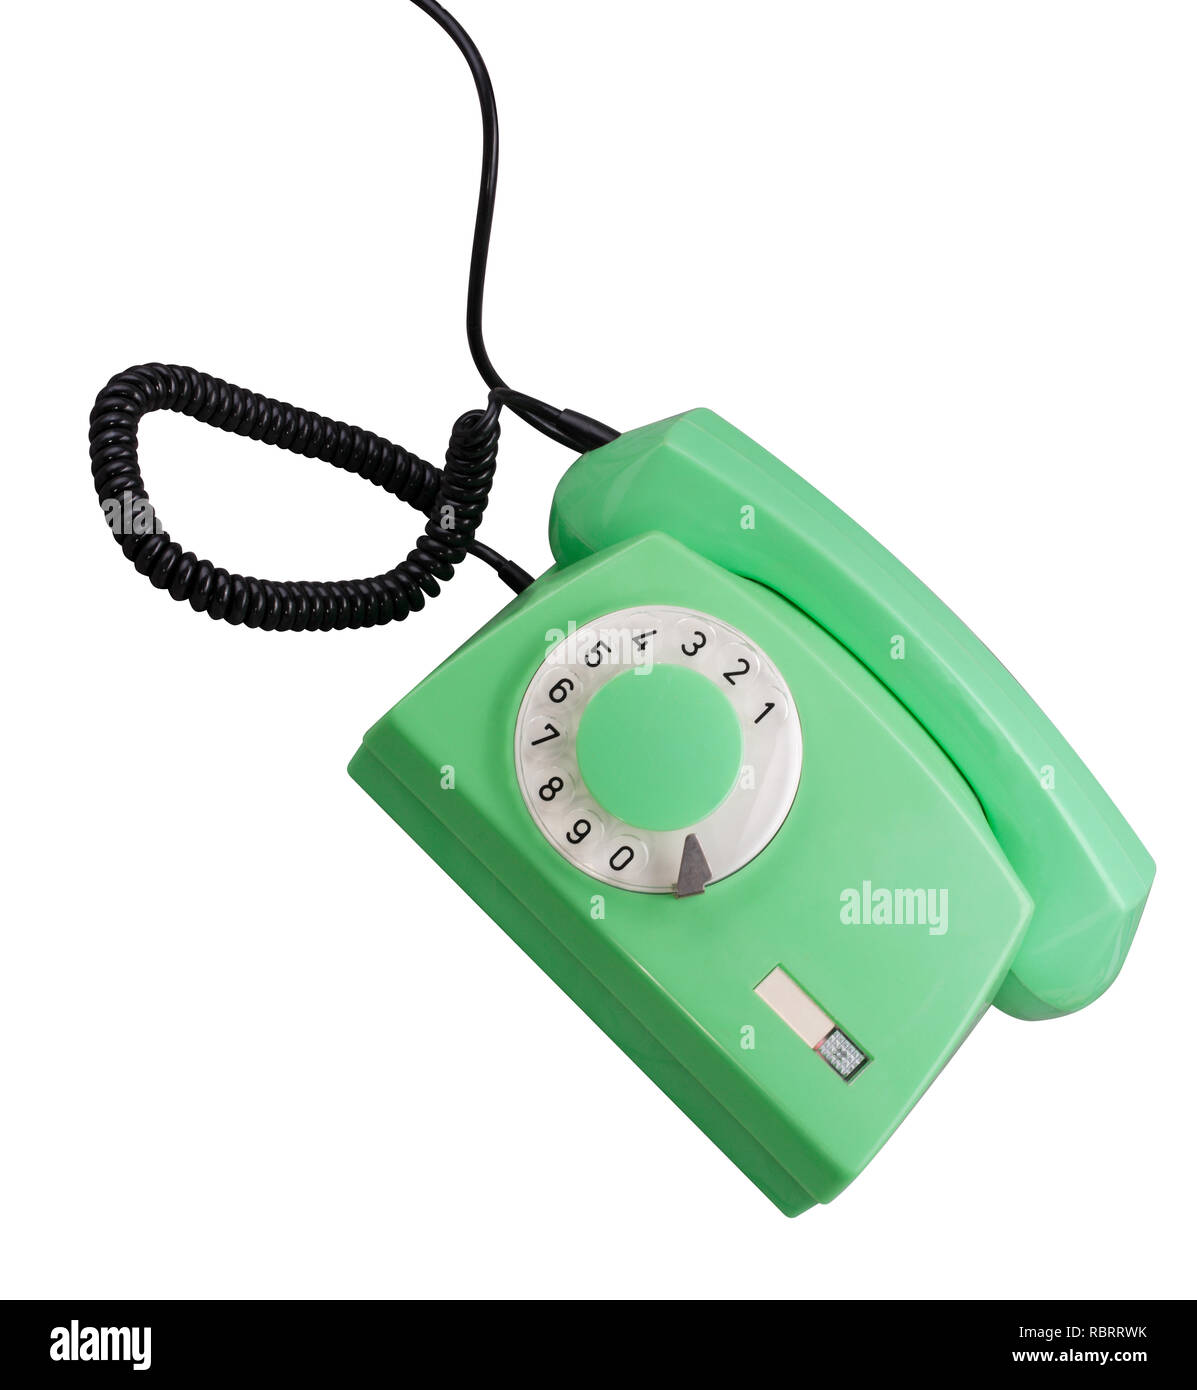 Old Green Rotary Telephone isolated - Stock Image